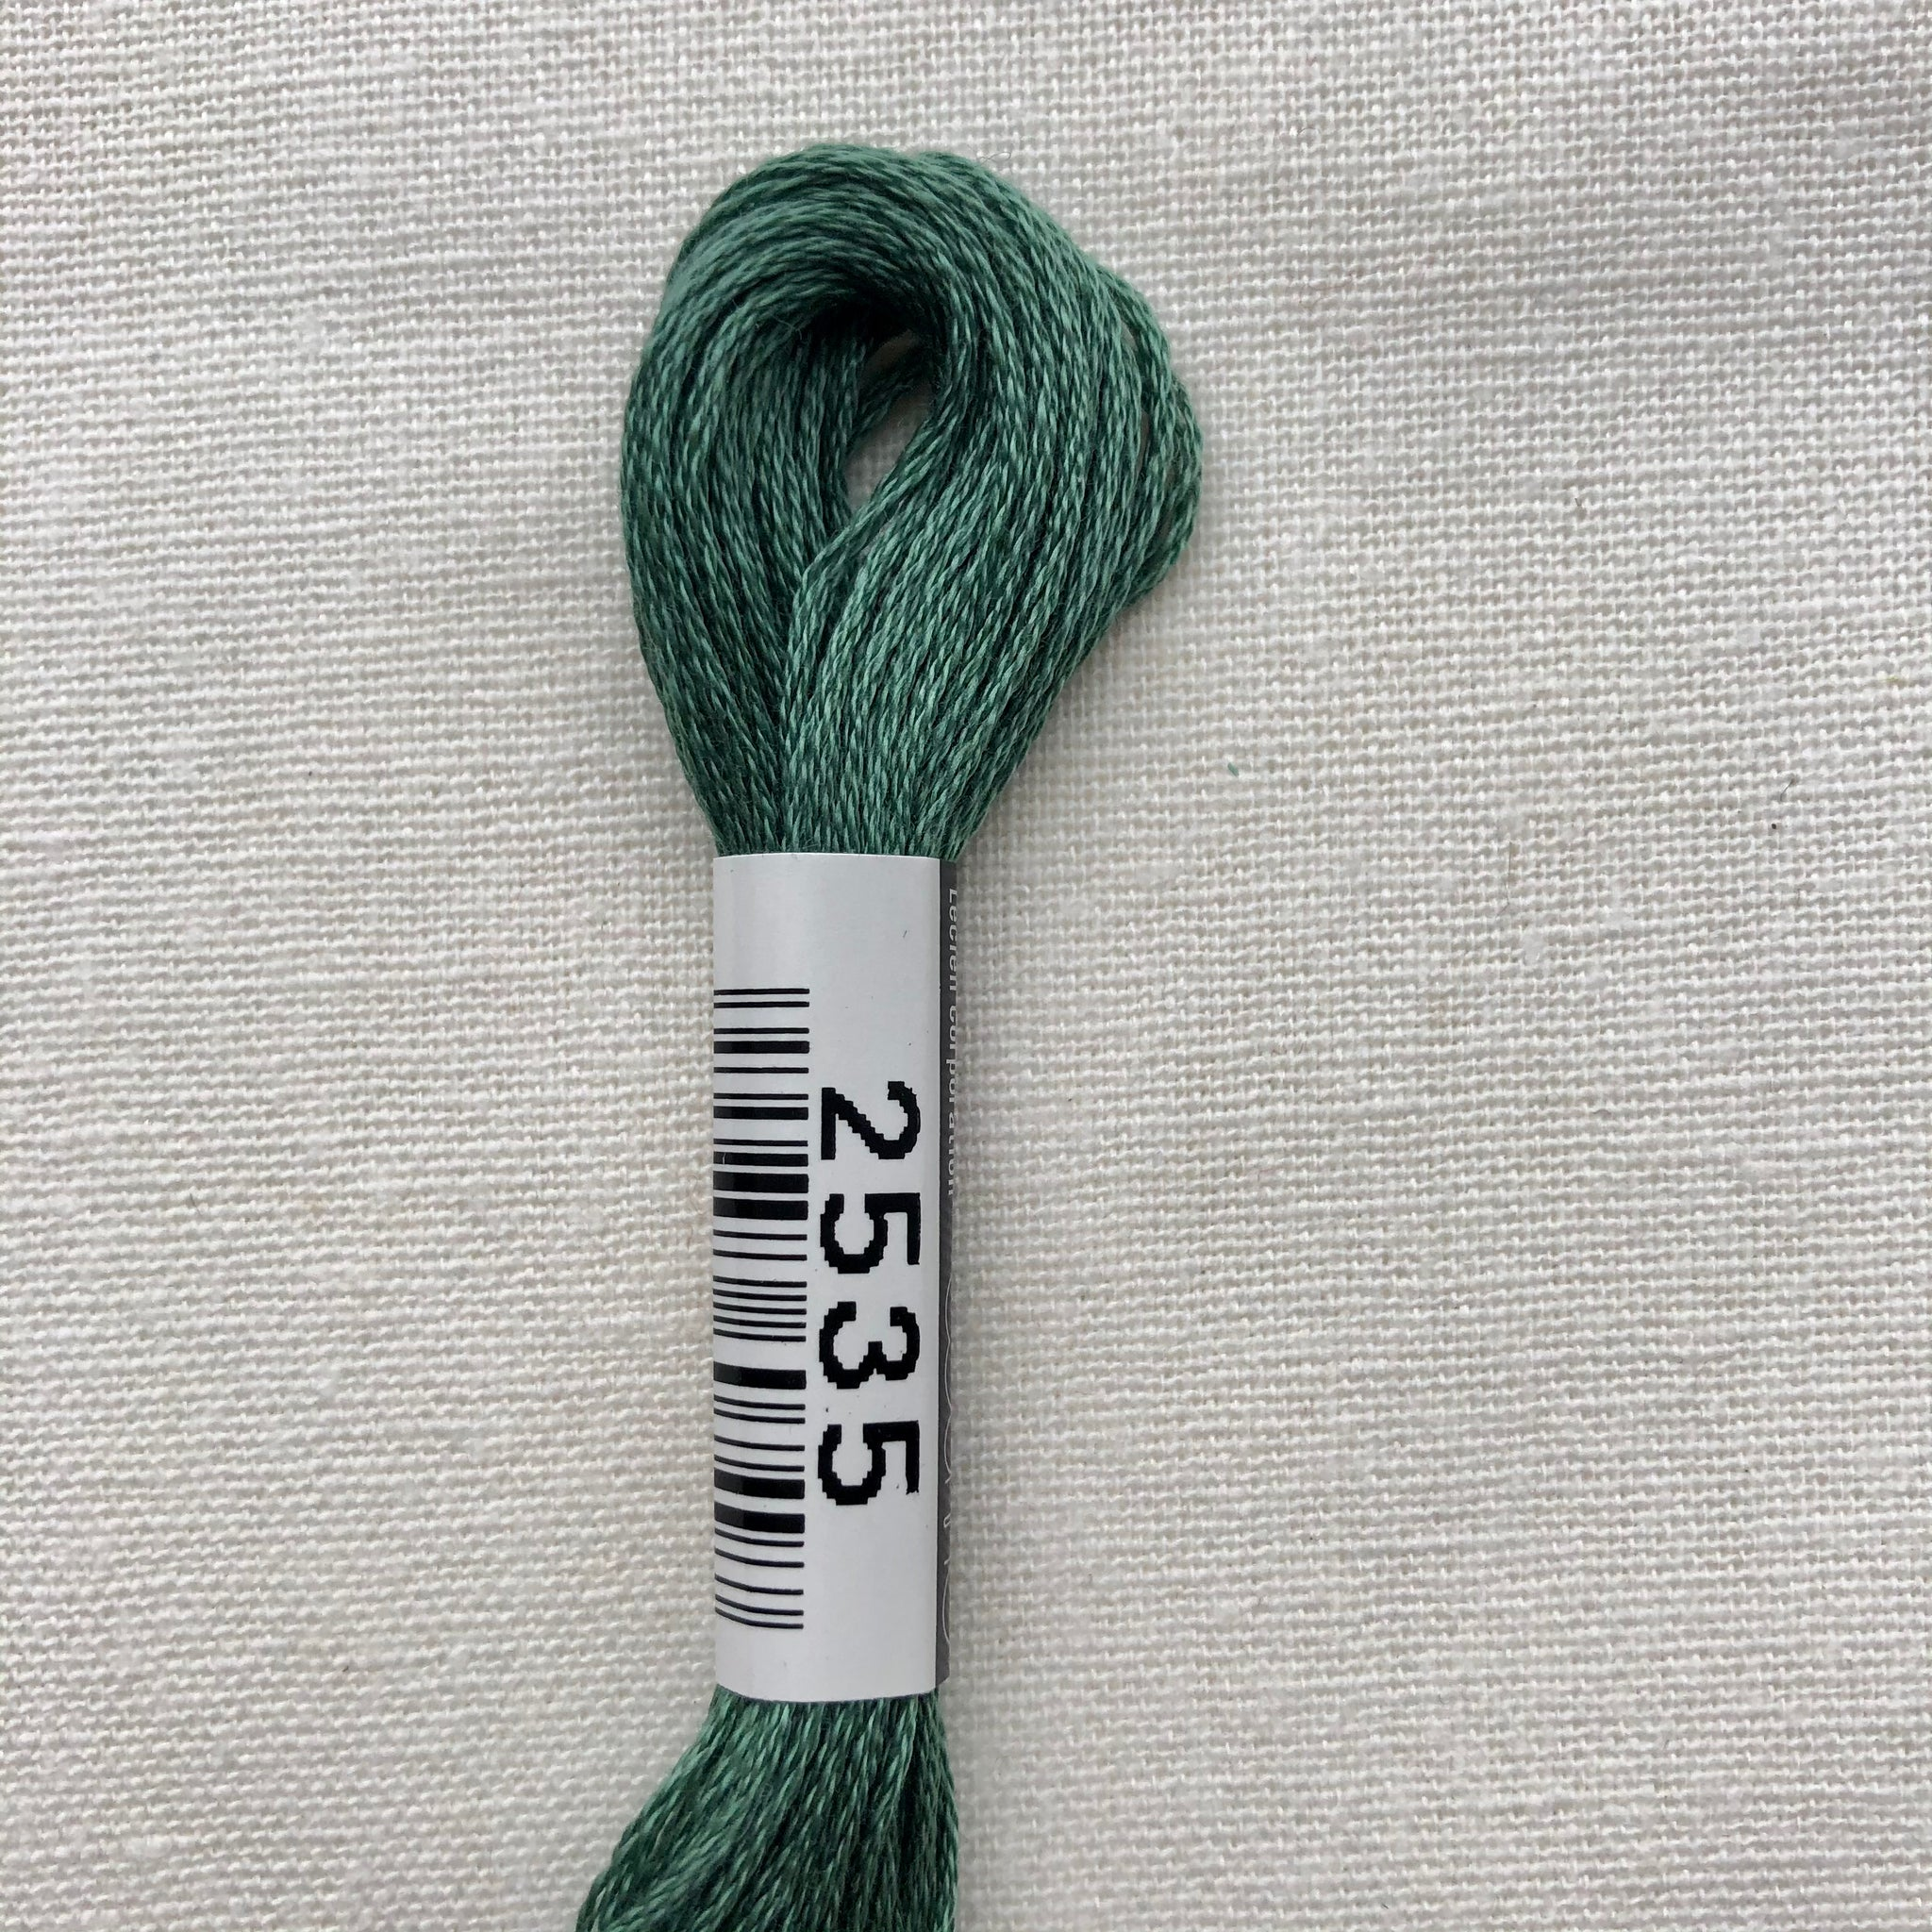 Cosmo, Cotton Embroidery Floss, Elm Green 2535